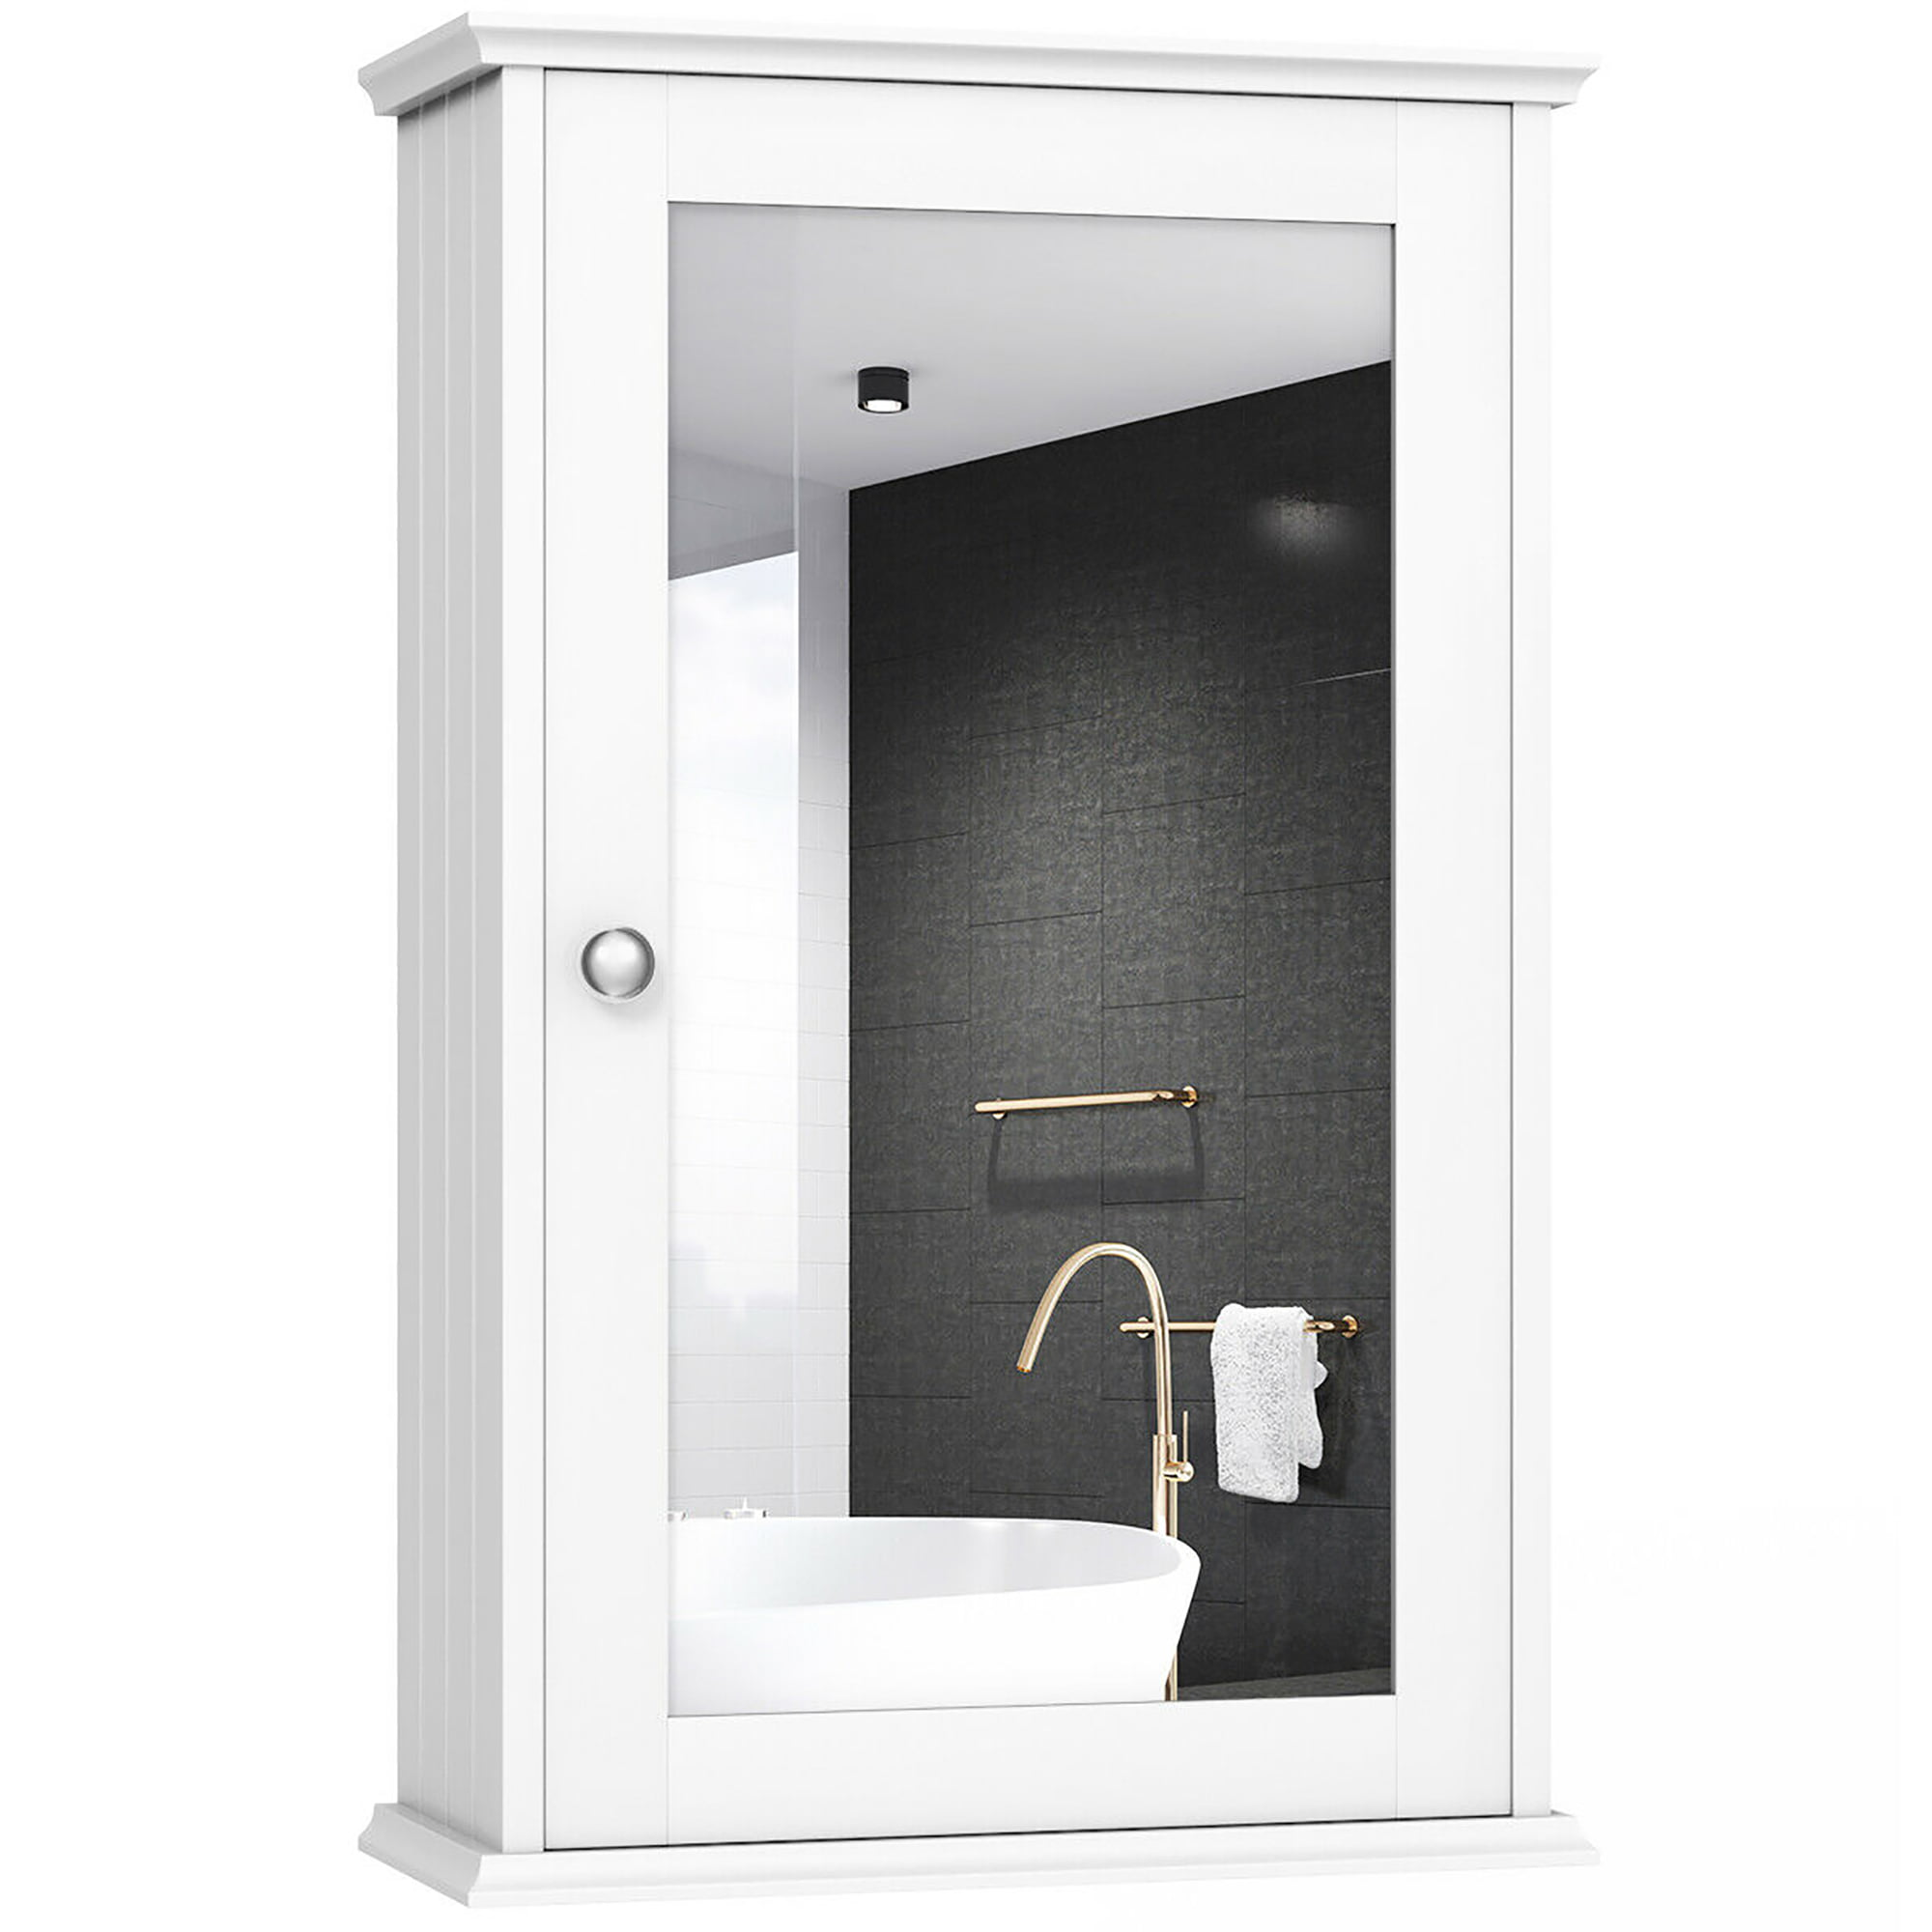 Vienna Single Door Mirrored Cabinet - White | Homebase | Mirror cabinets, Single doors, Mirror door